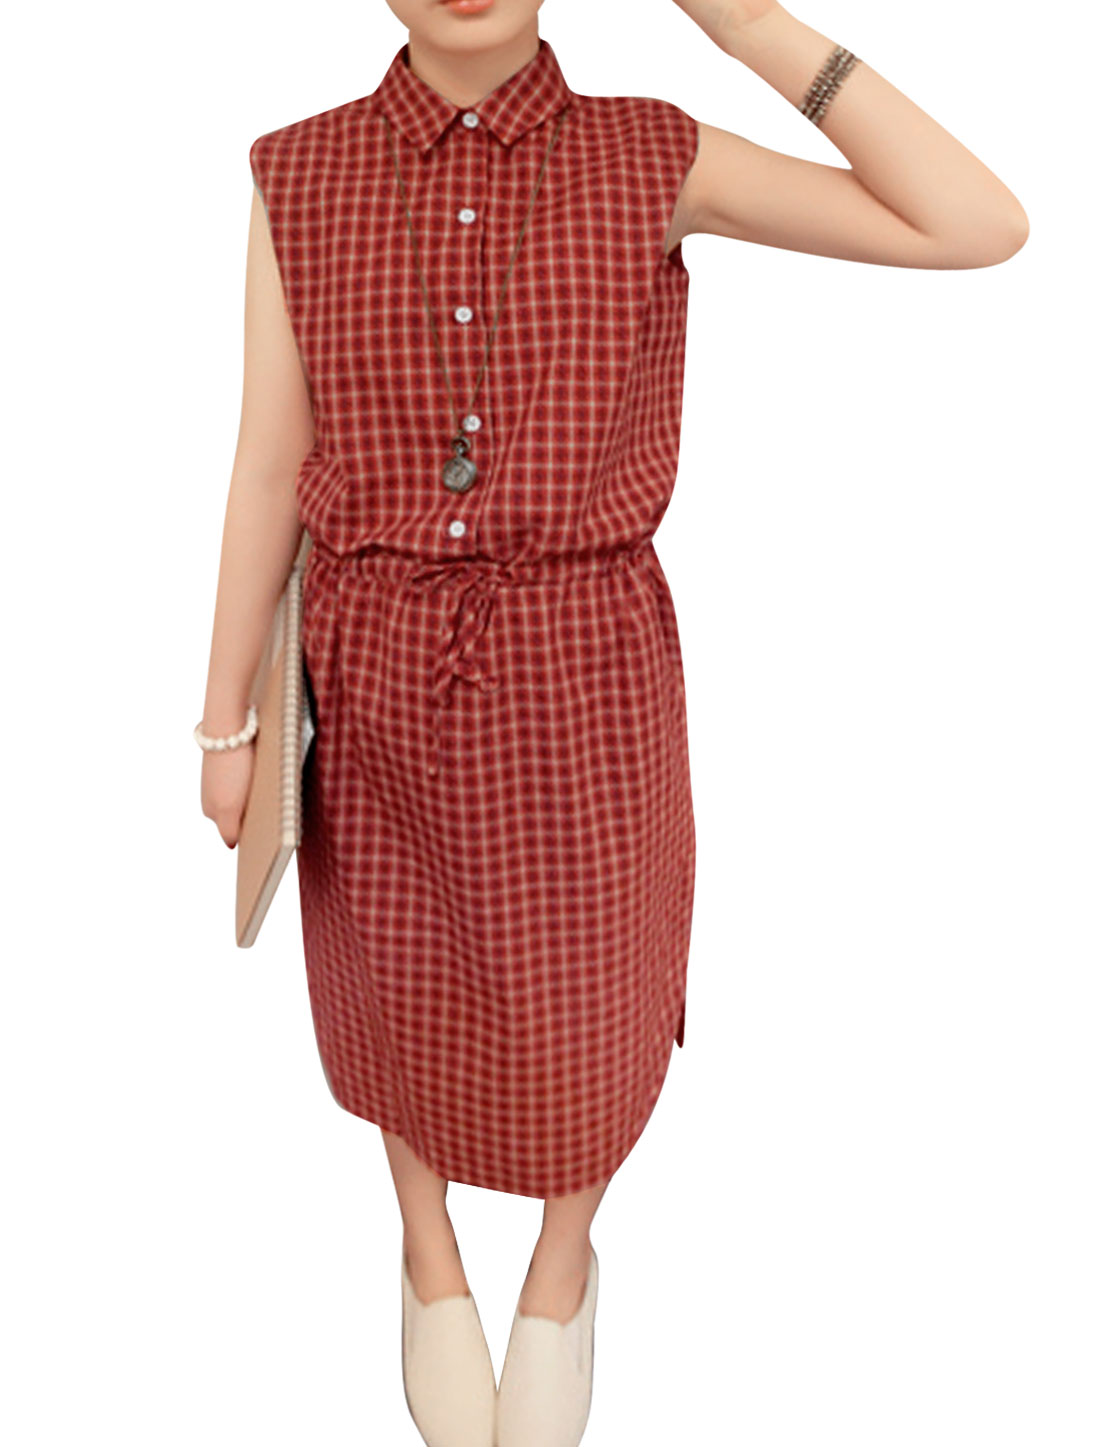 Lady's Sleeveless Checks Pattern Button Closure Front Red Dress XS